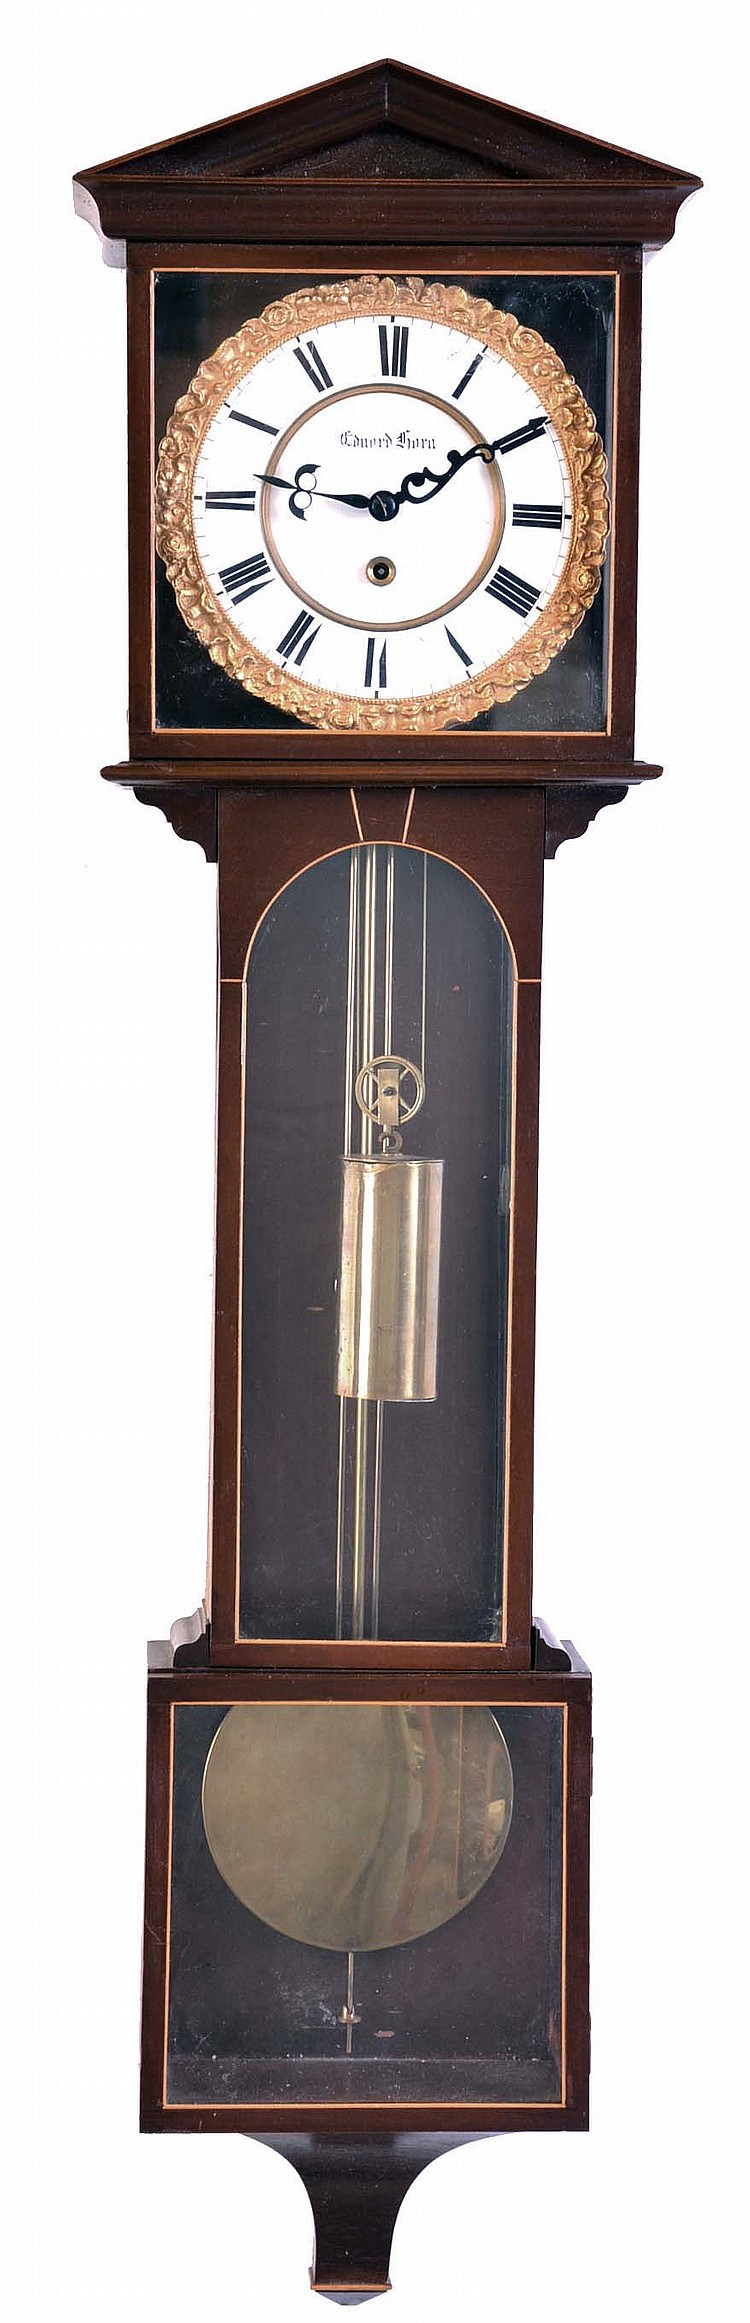 Laterndluhr, nine glass mahogany case, two part Roman numeral enamel dial with gilt bezel, brass pendulum and weight